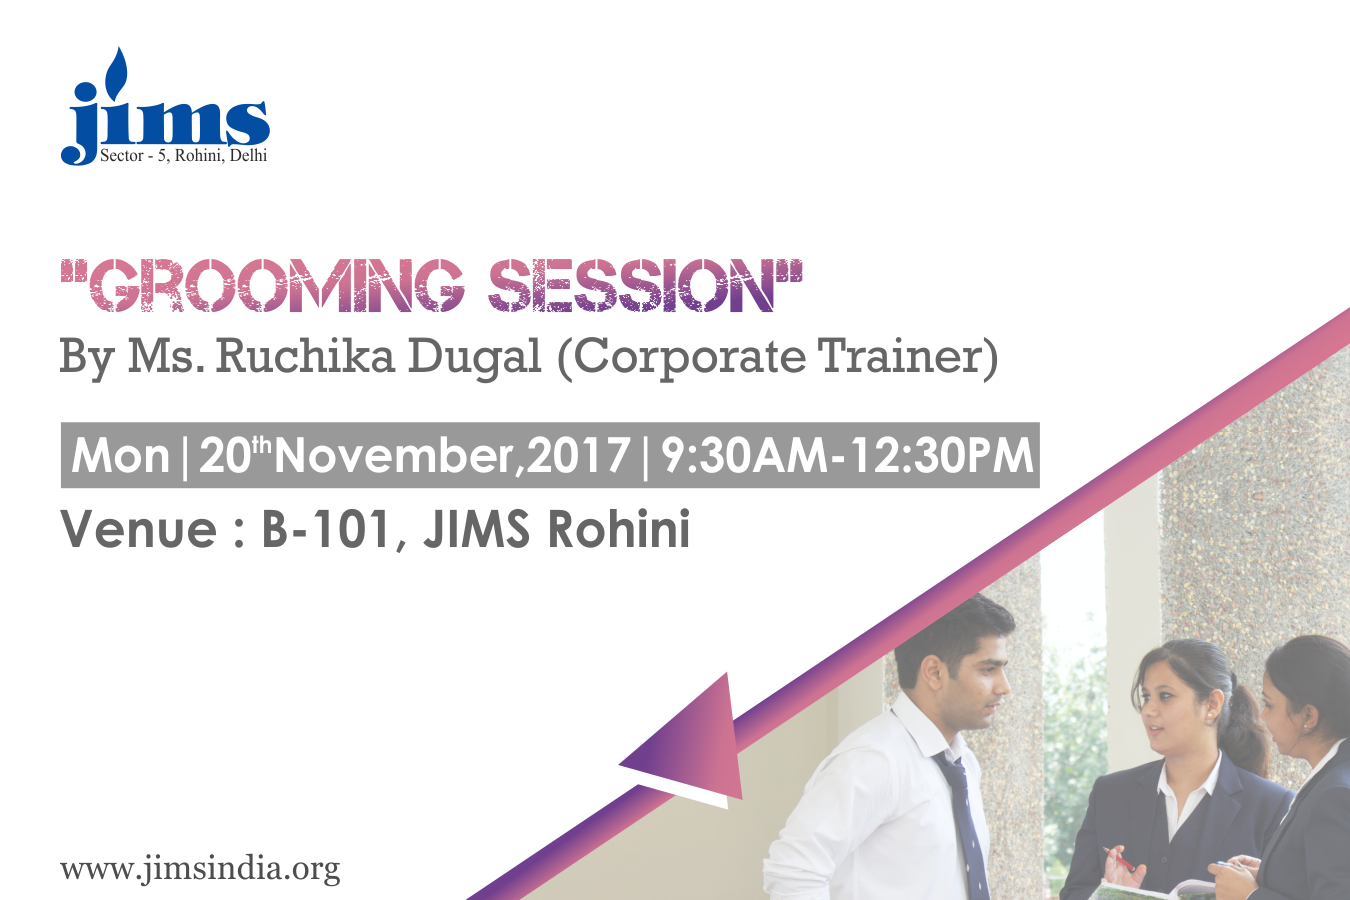 Grooming session 20 nov 2017